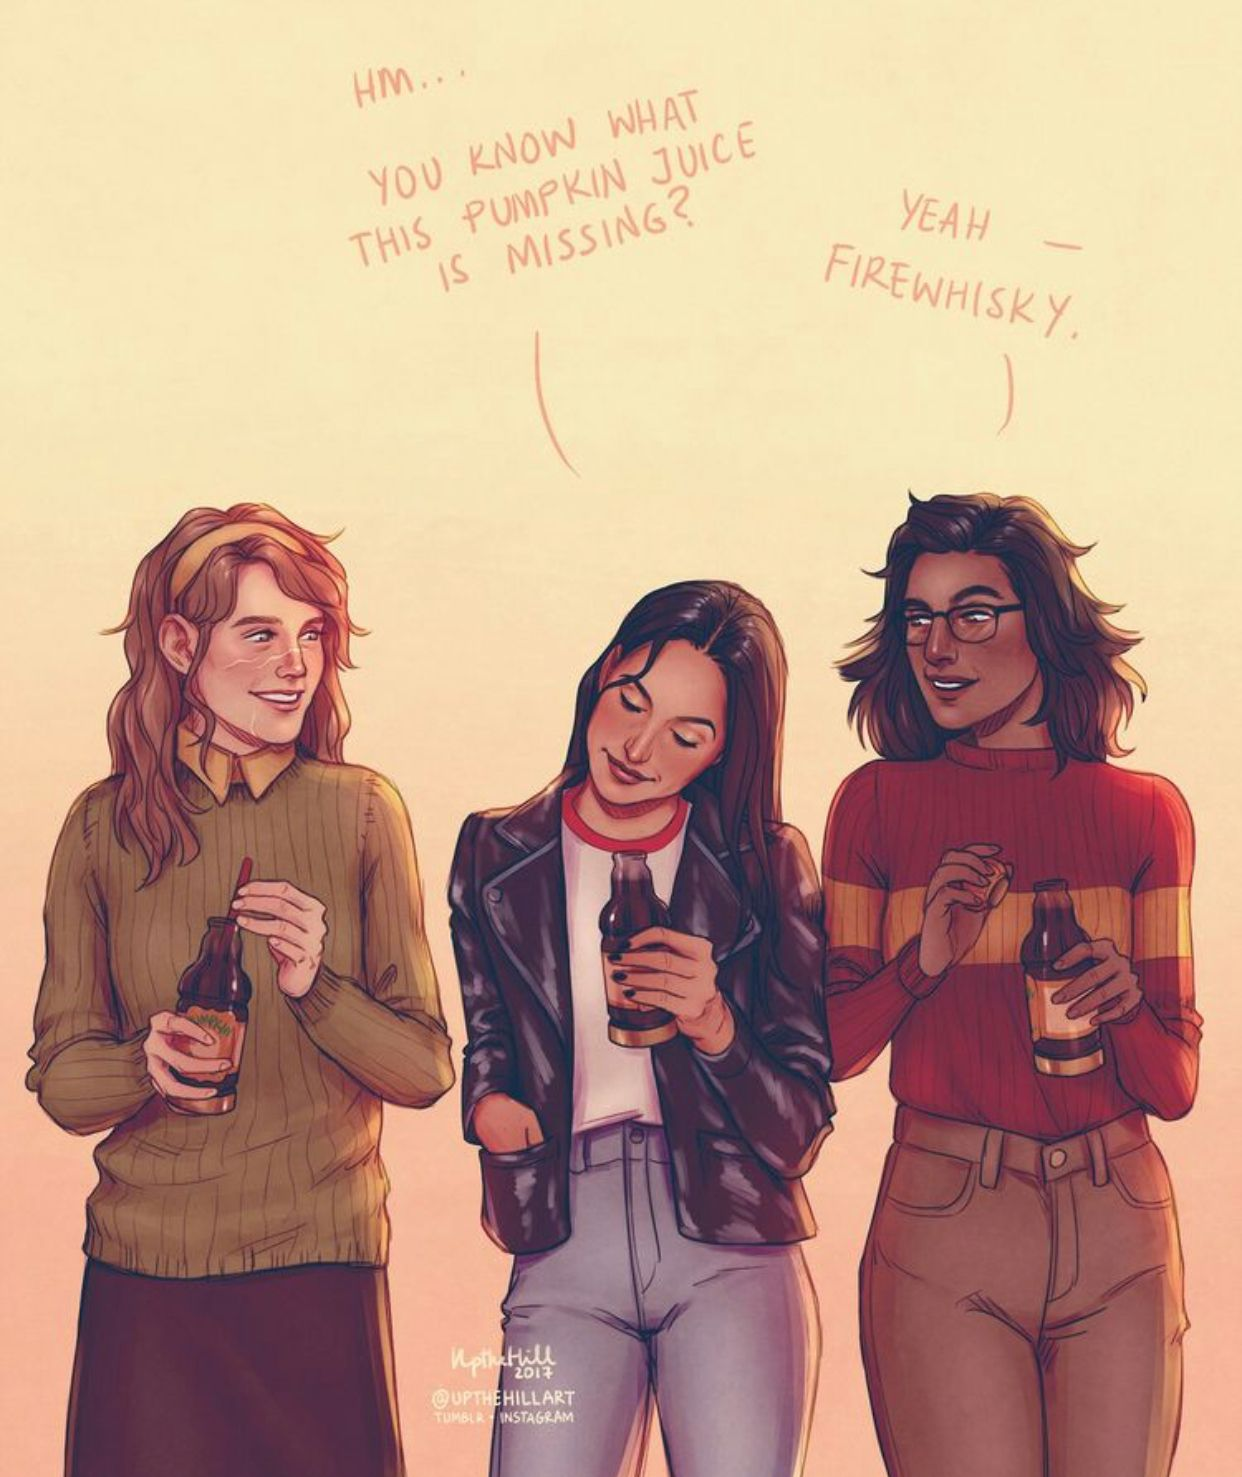 James Potter Libros Genderbent Remus Lupin Sirius Black And James Potter